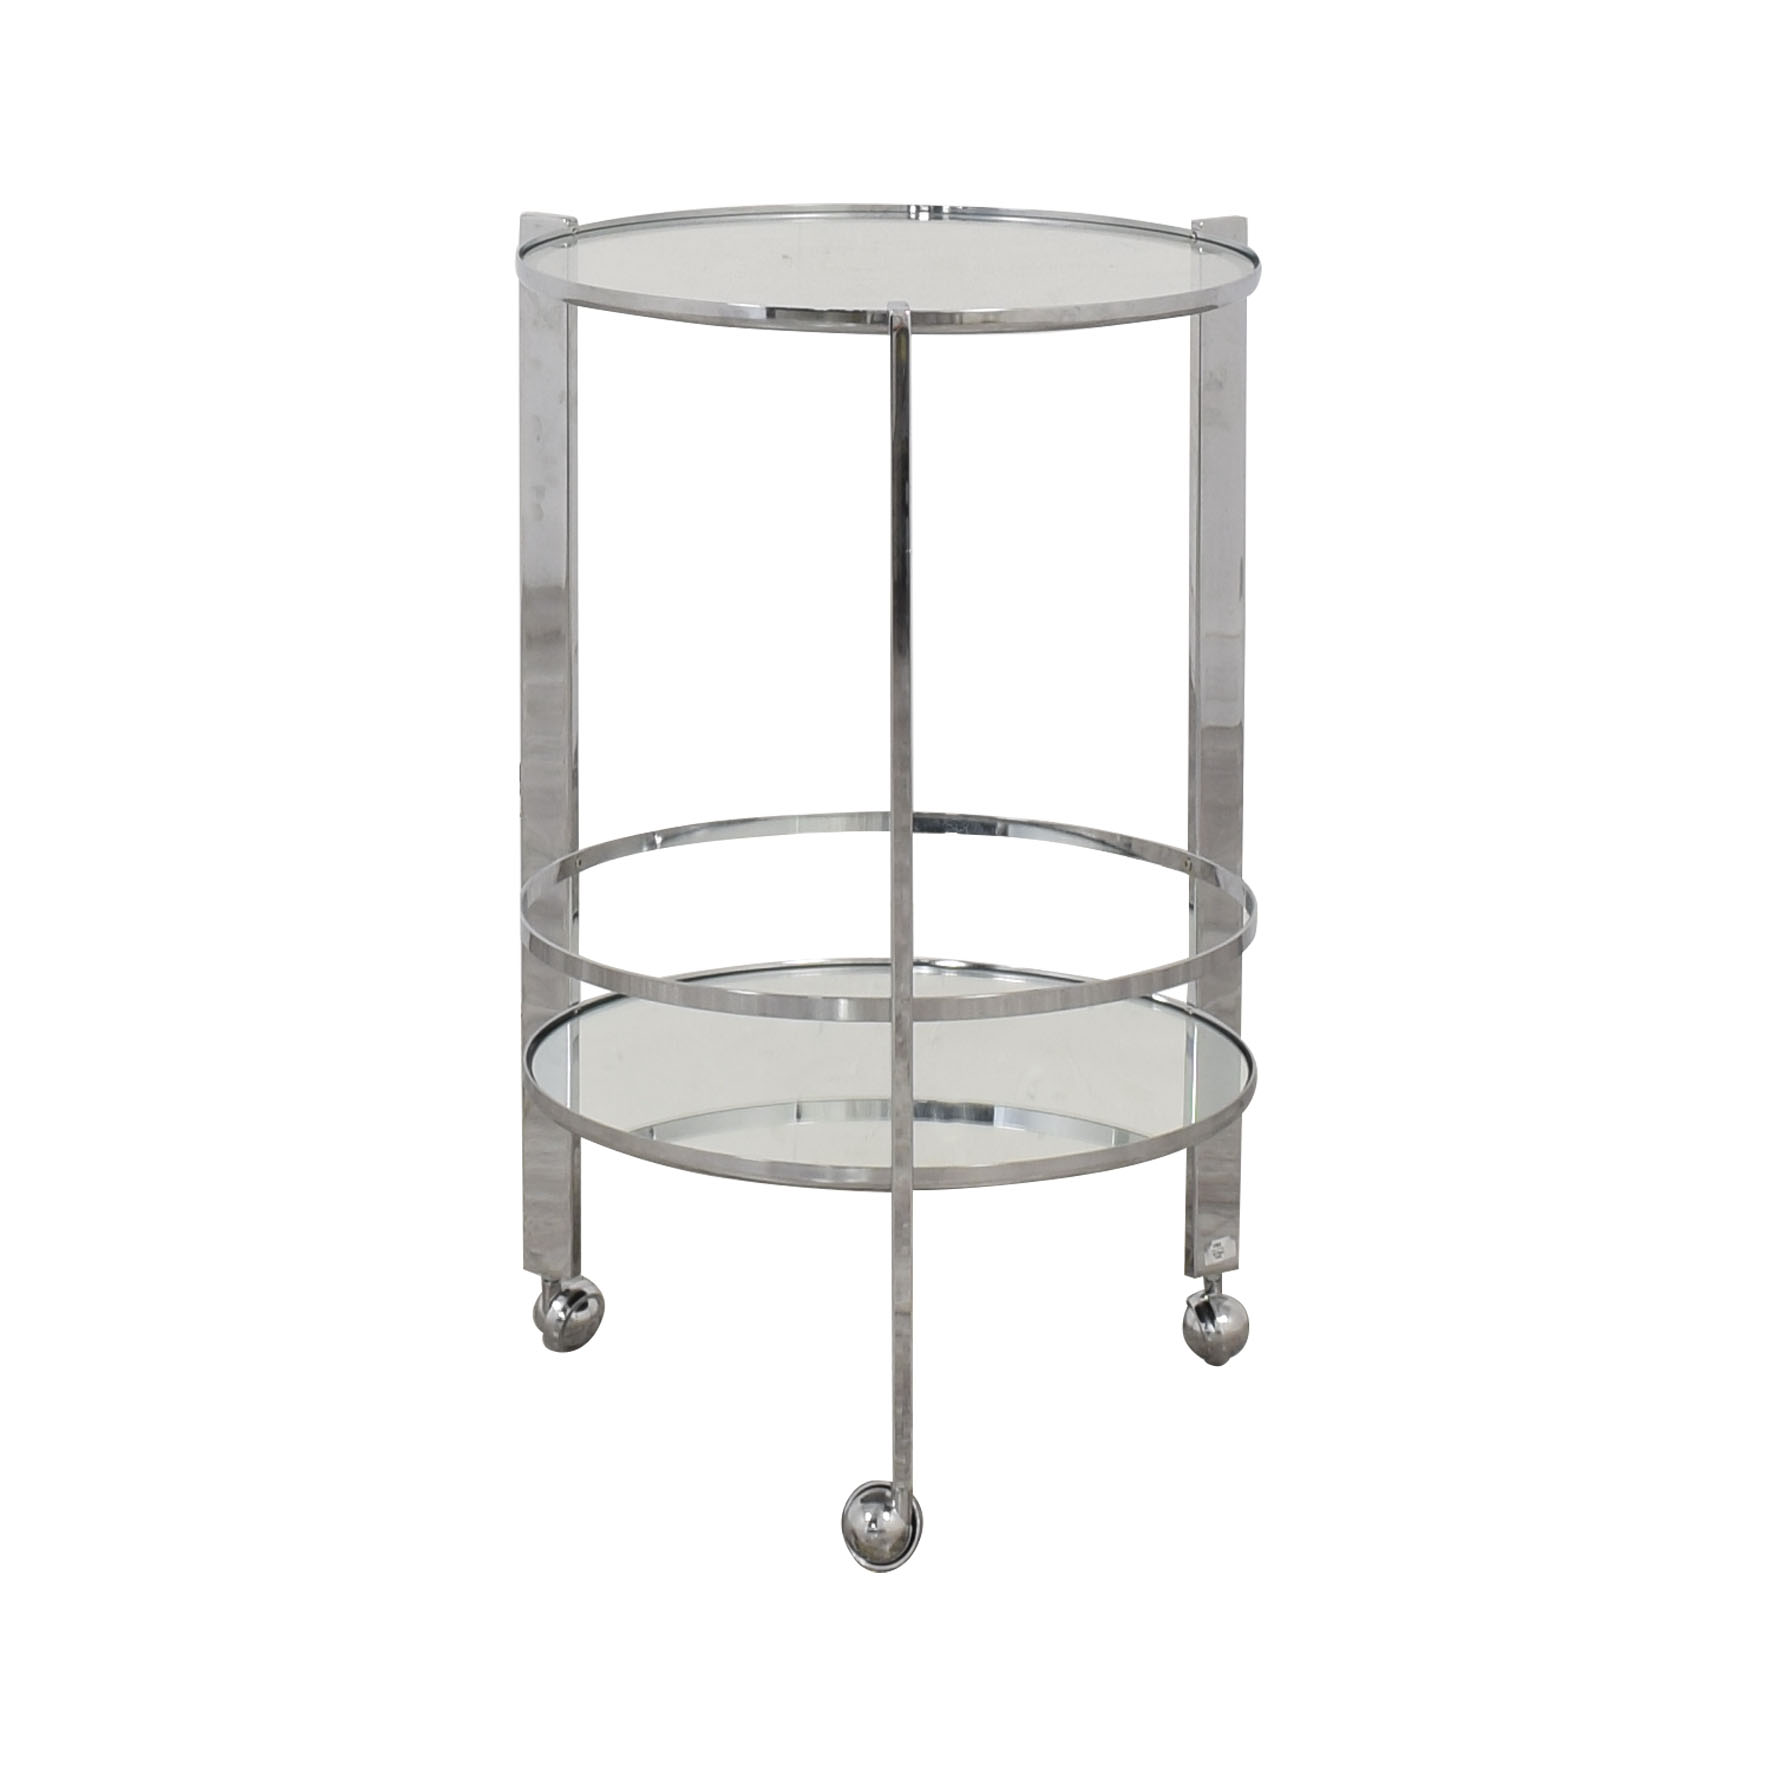 CB2 CB2 Ernest Chome Bar Cart price